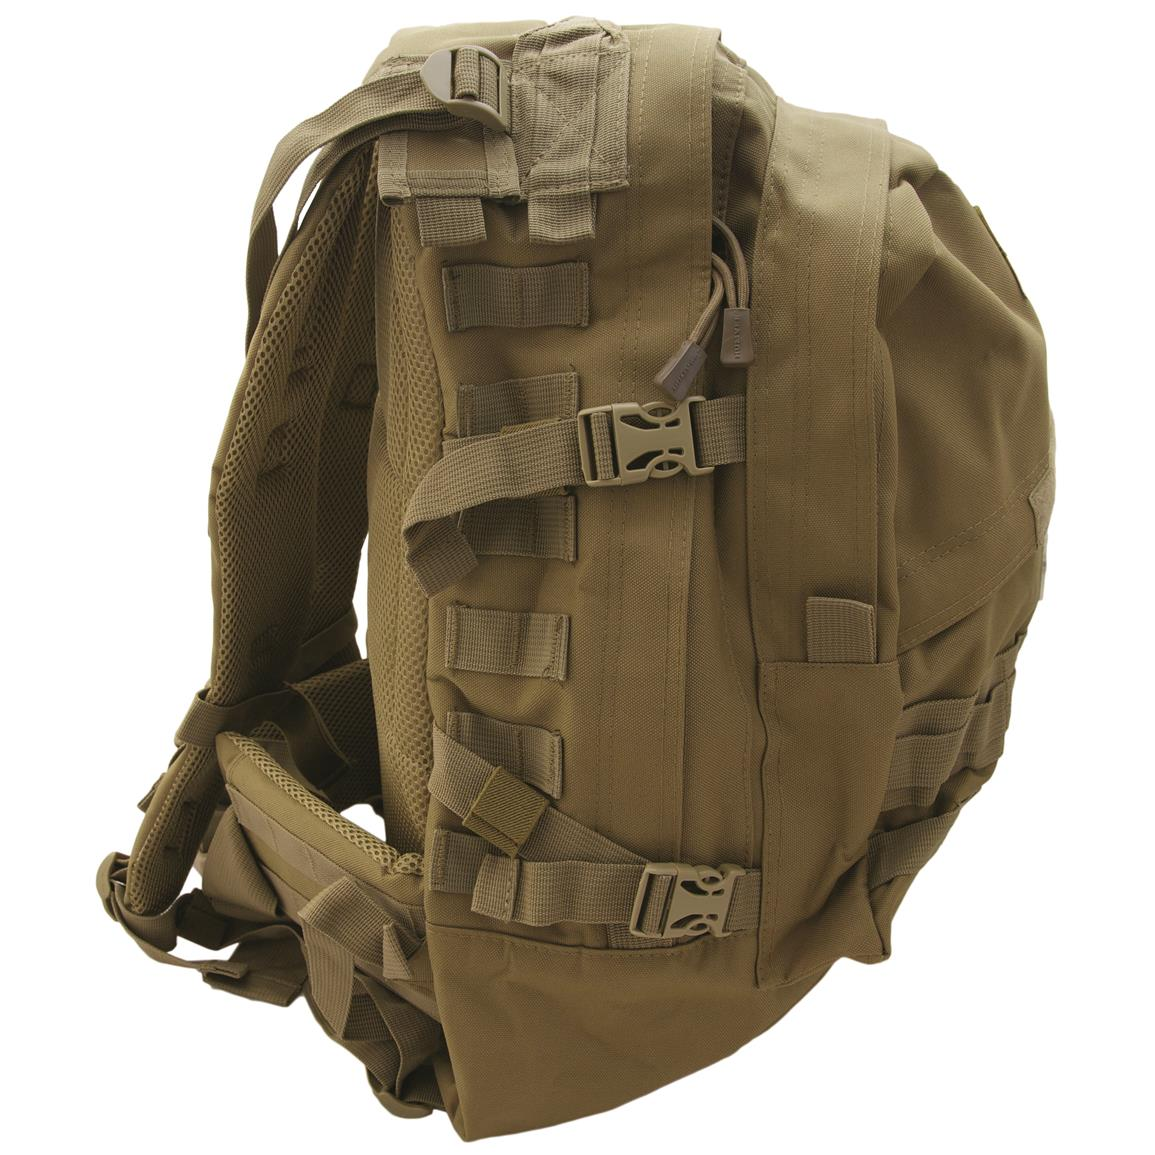 Humvee Day Pack Gear Bag, Tan, Side